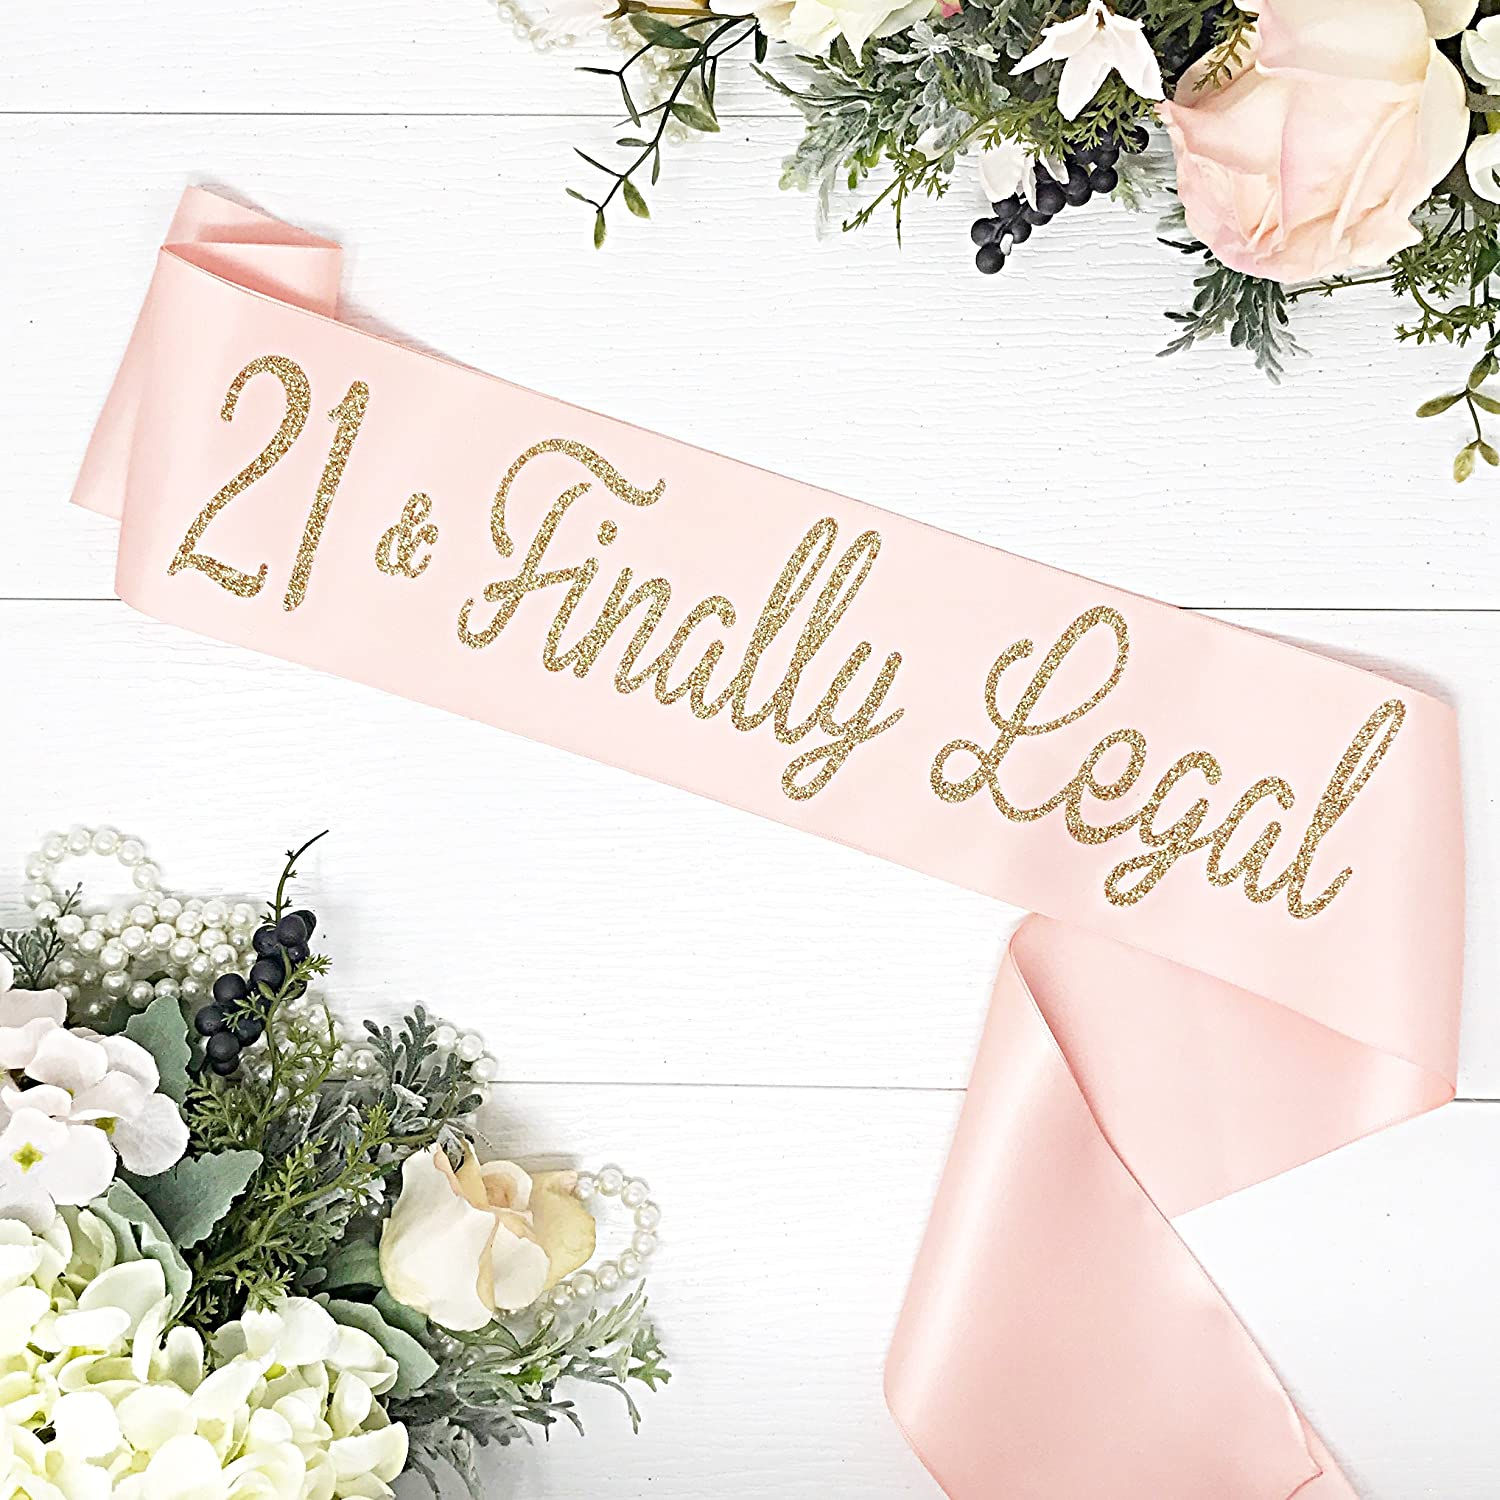 21st Birthday - Birthday Sash - Sunset Blush & Gold